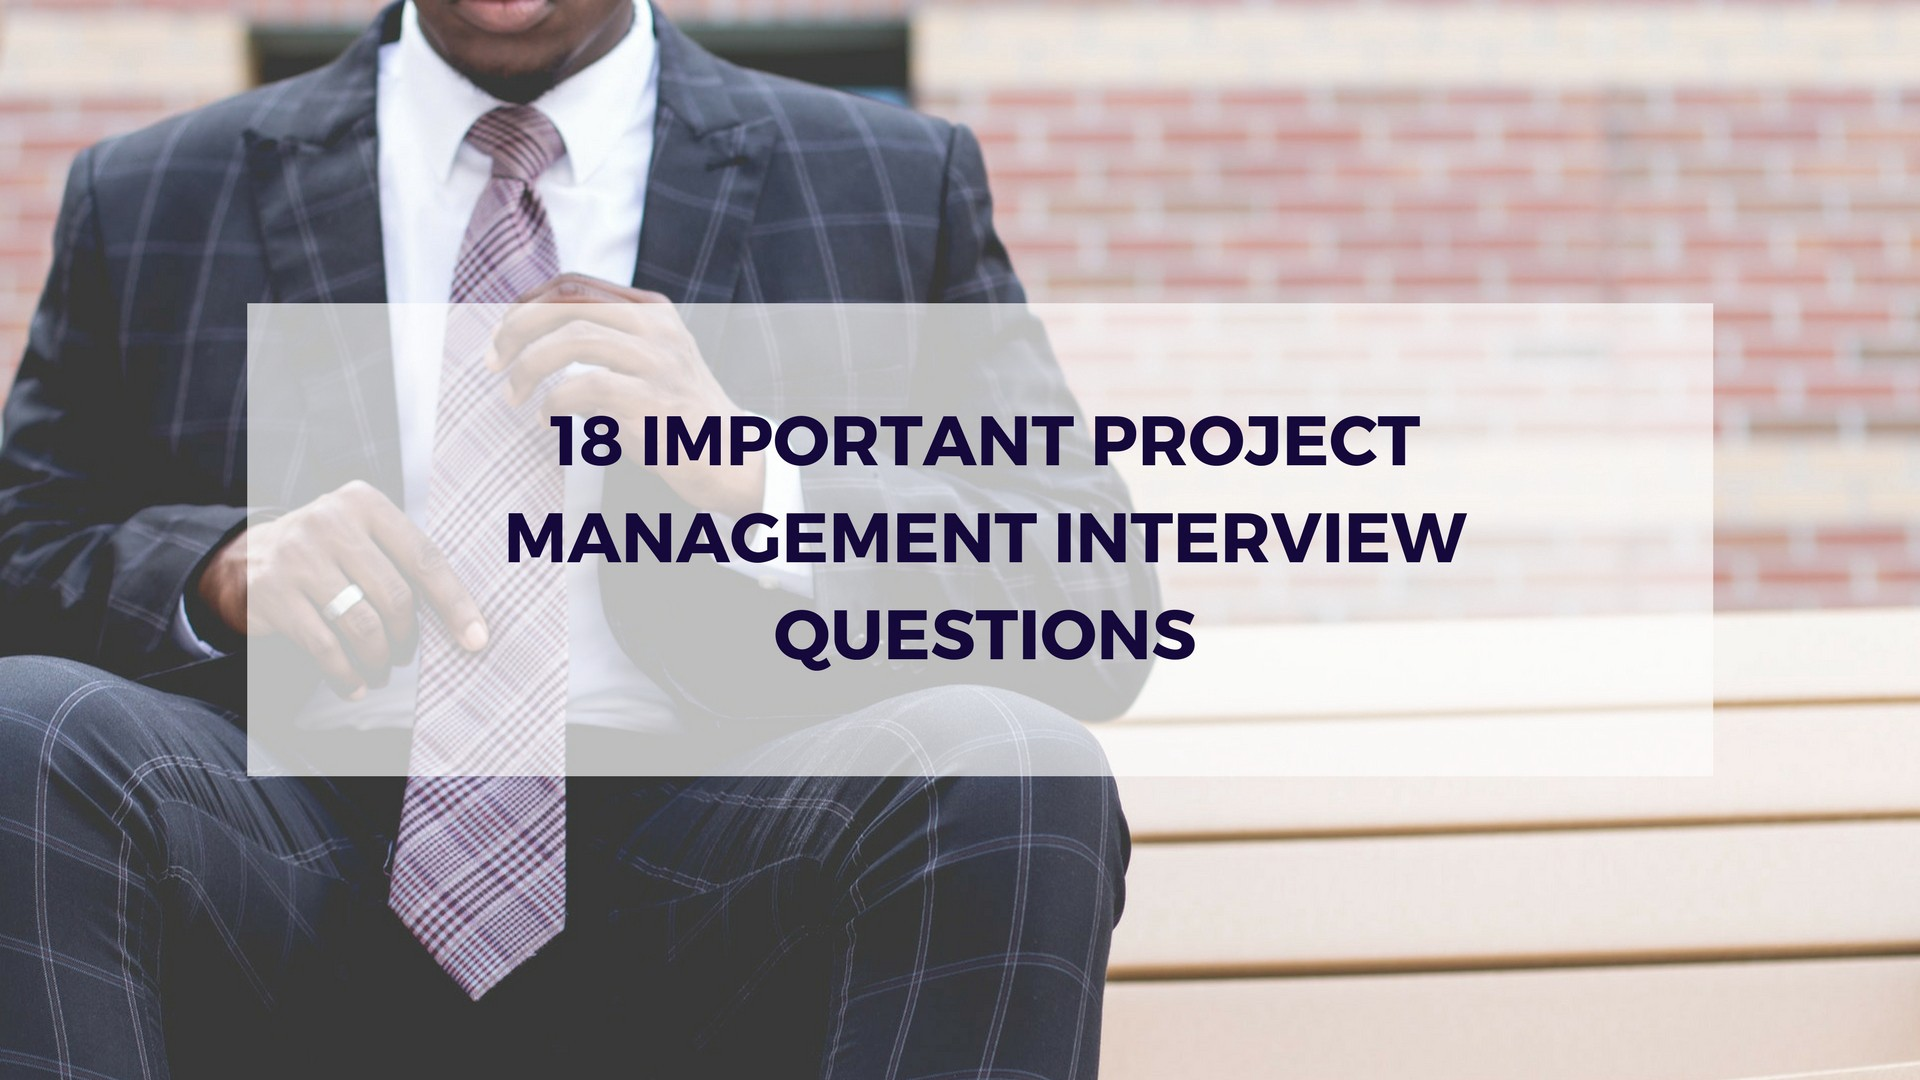 18 important project management interview questions